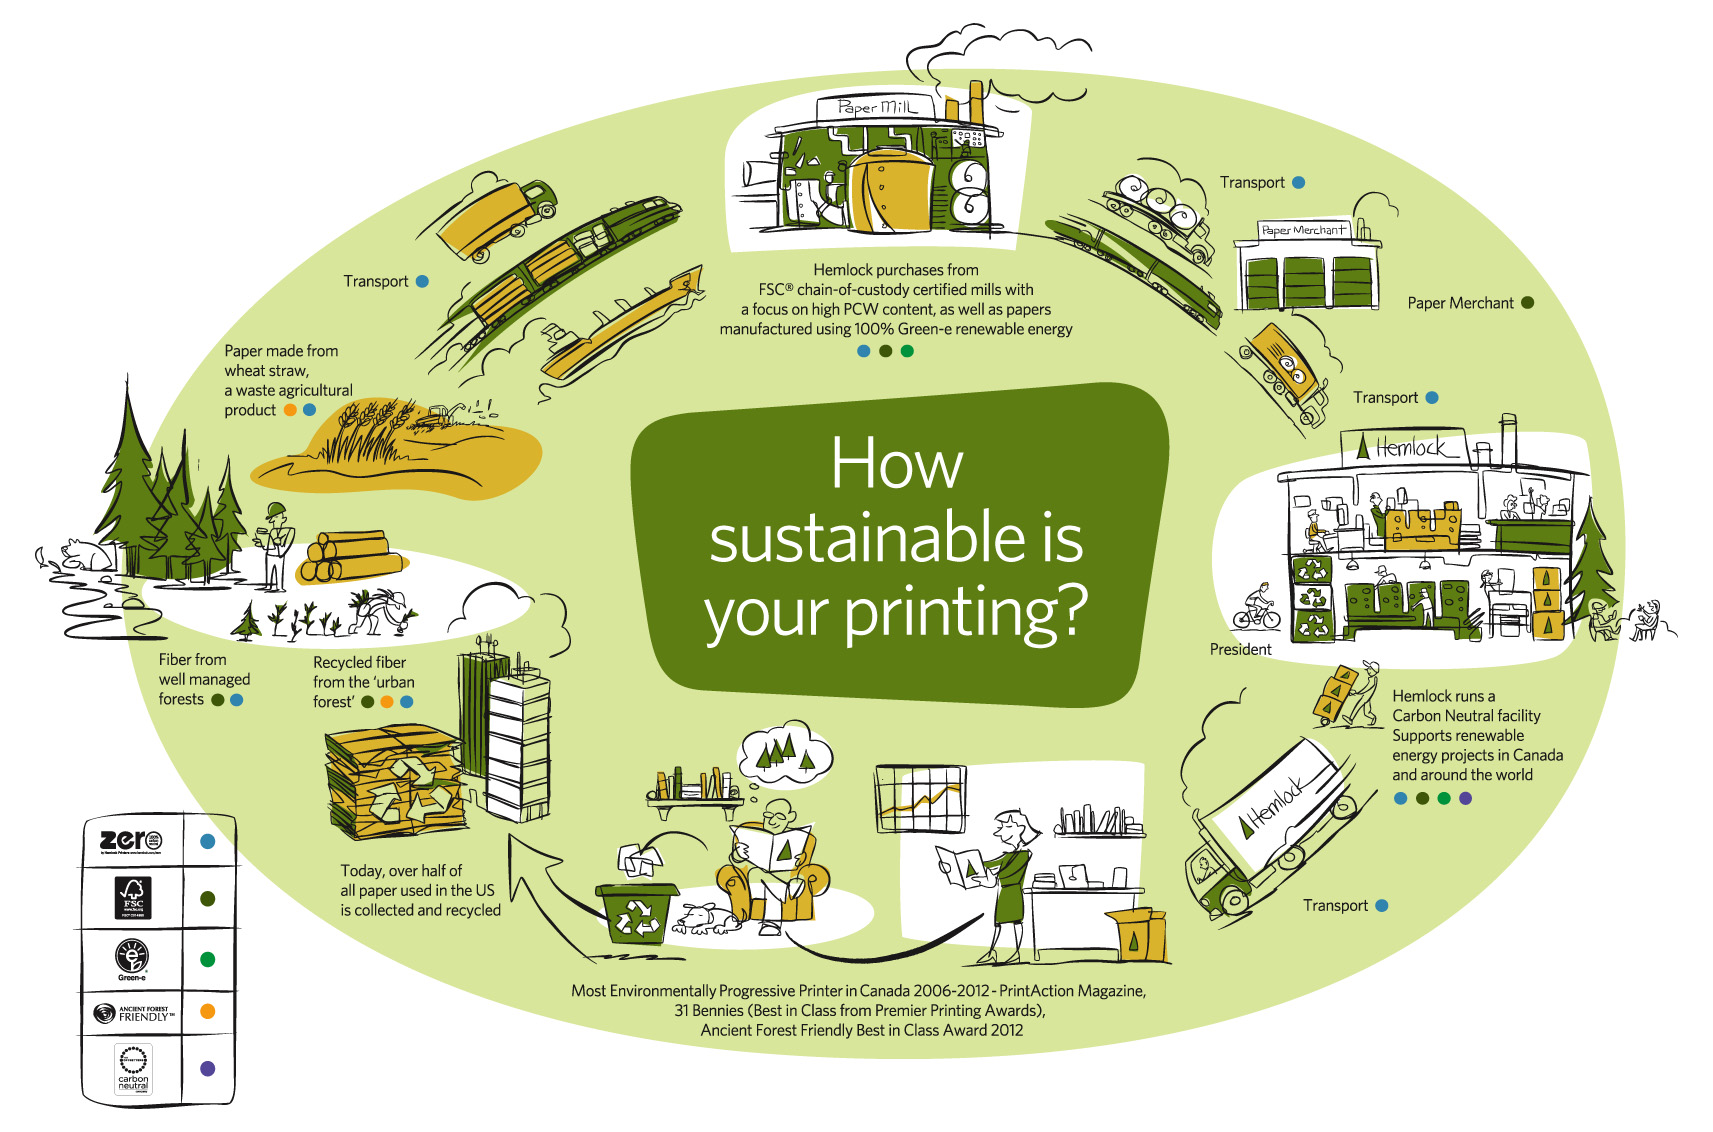 A green print supply chain illustration